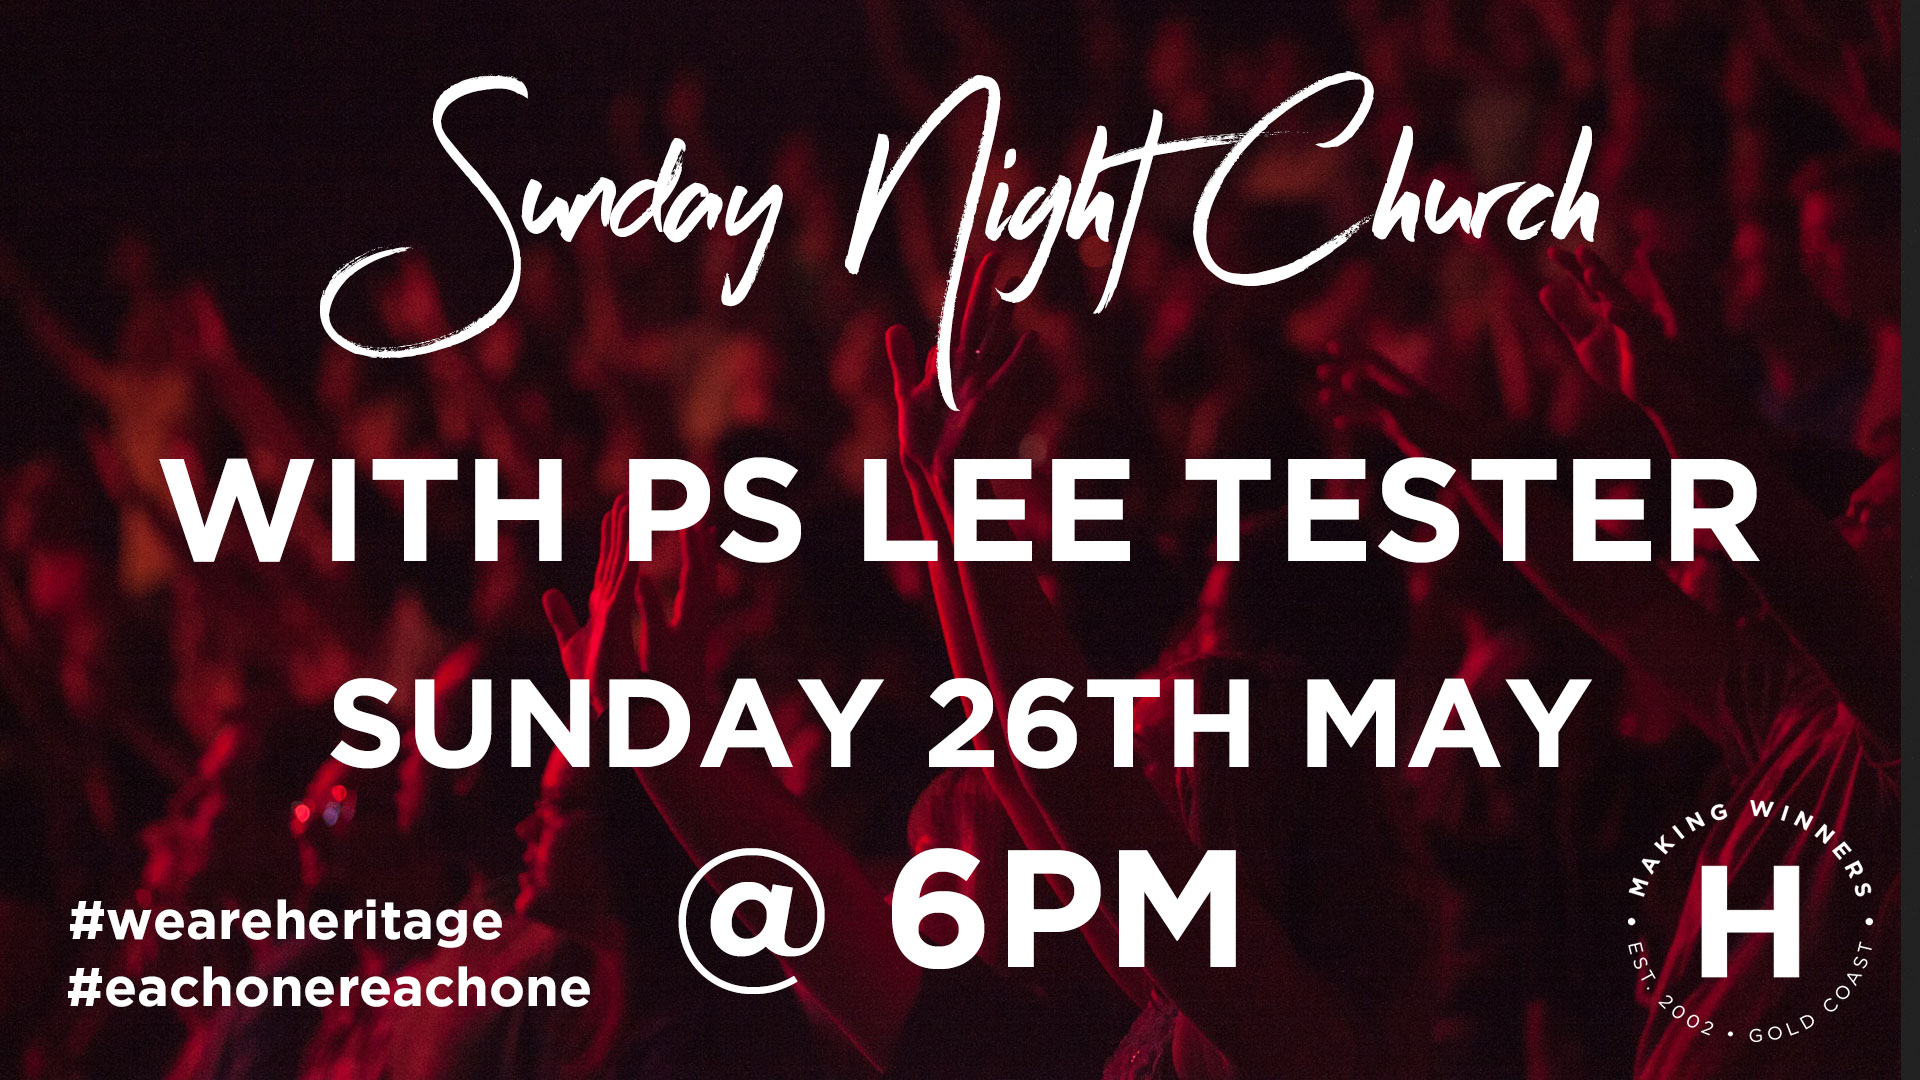 Sunday Night Church with Ps Lee Tester